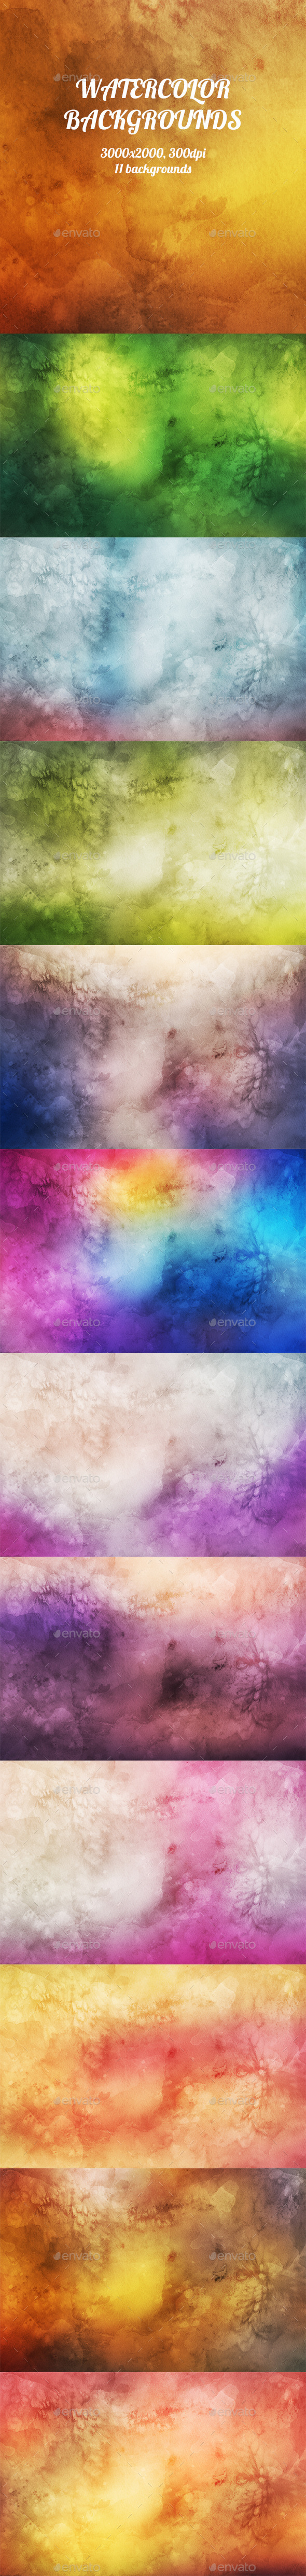 GraphicRiver Watercolor Backgrounds 8953286